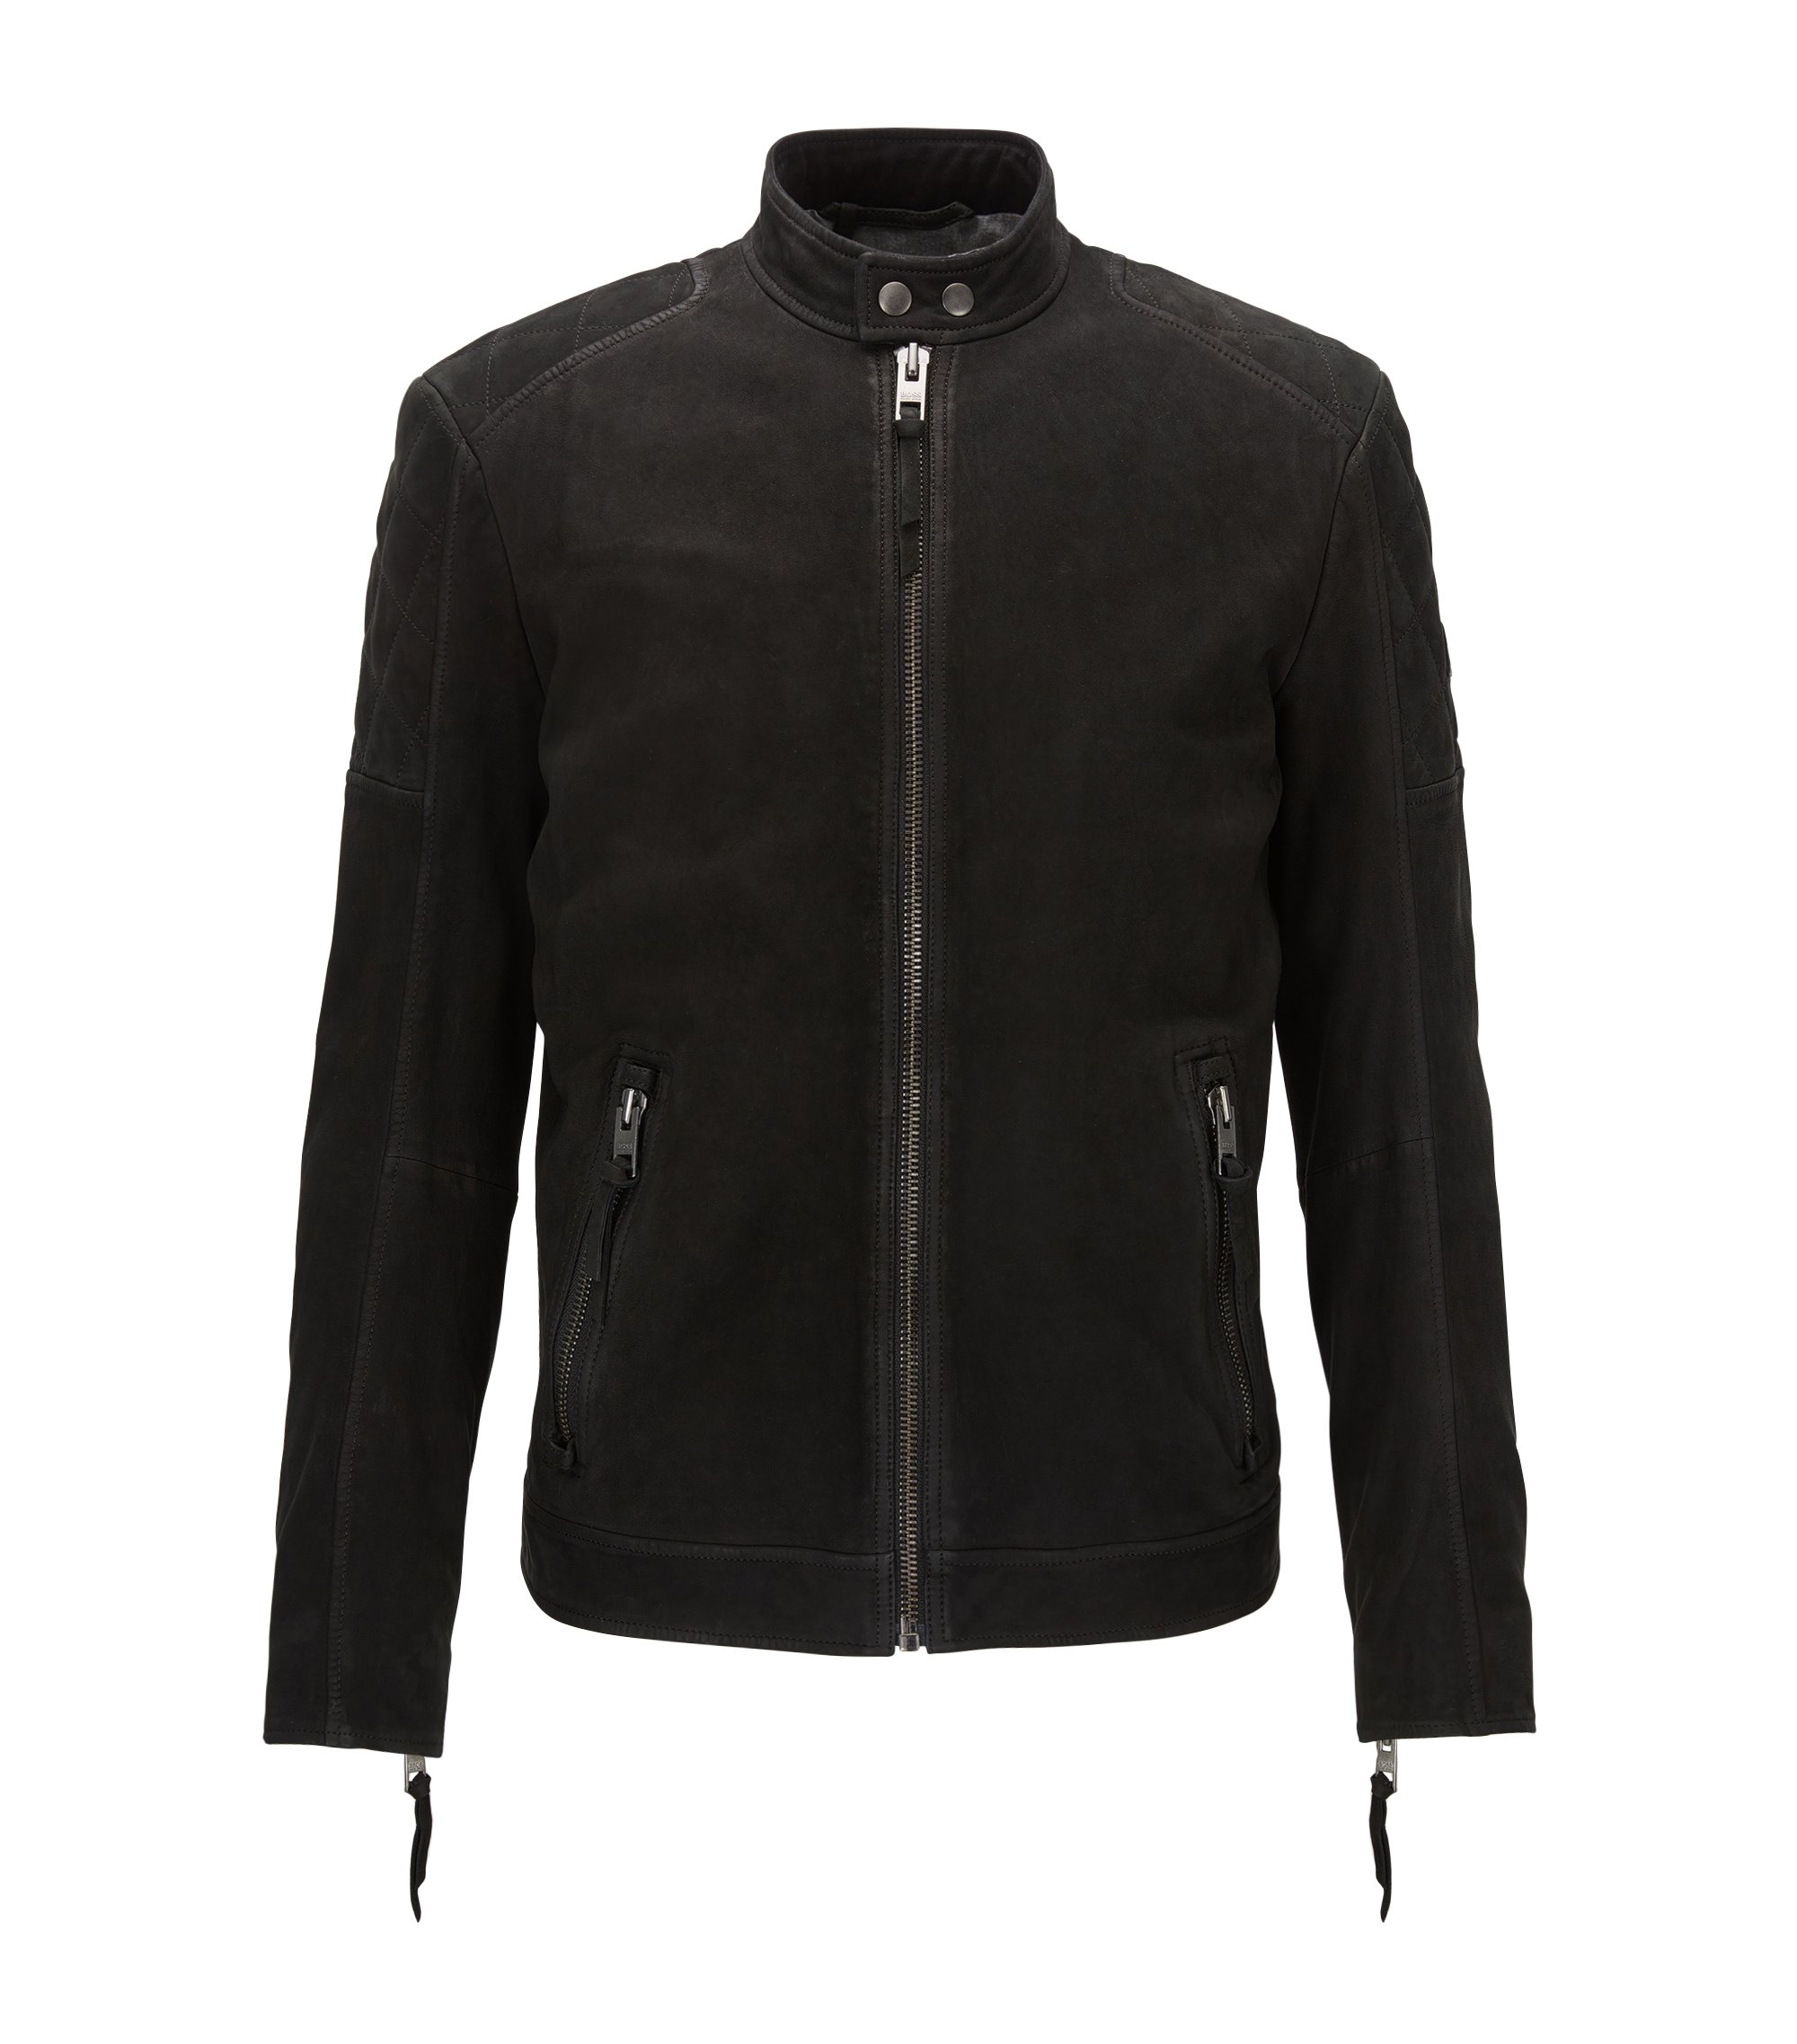 Giubbotto biker slim fit in pelle opaca, Nero